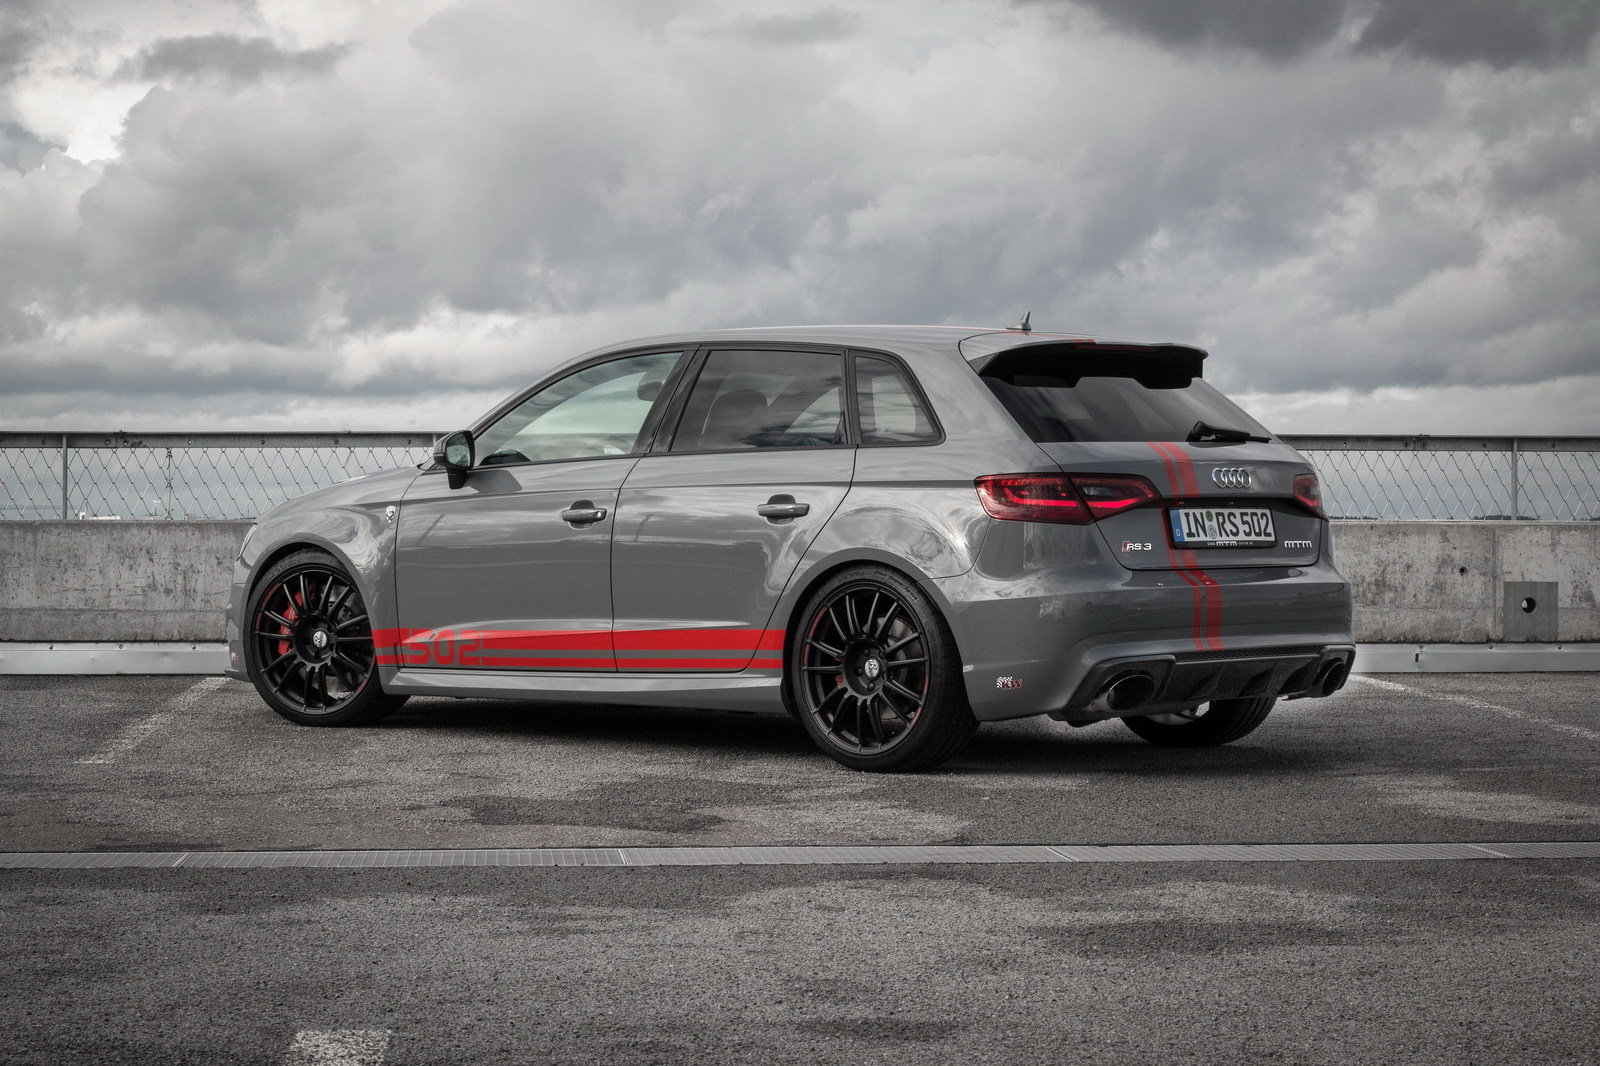 Audi Rs3 Wallpapers Vehicles Hq Audi Rs3 Pictures 4k Wallpapers 2019